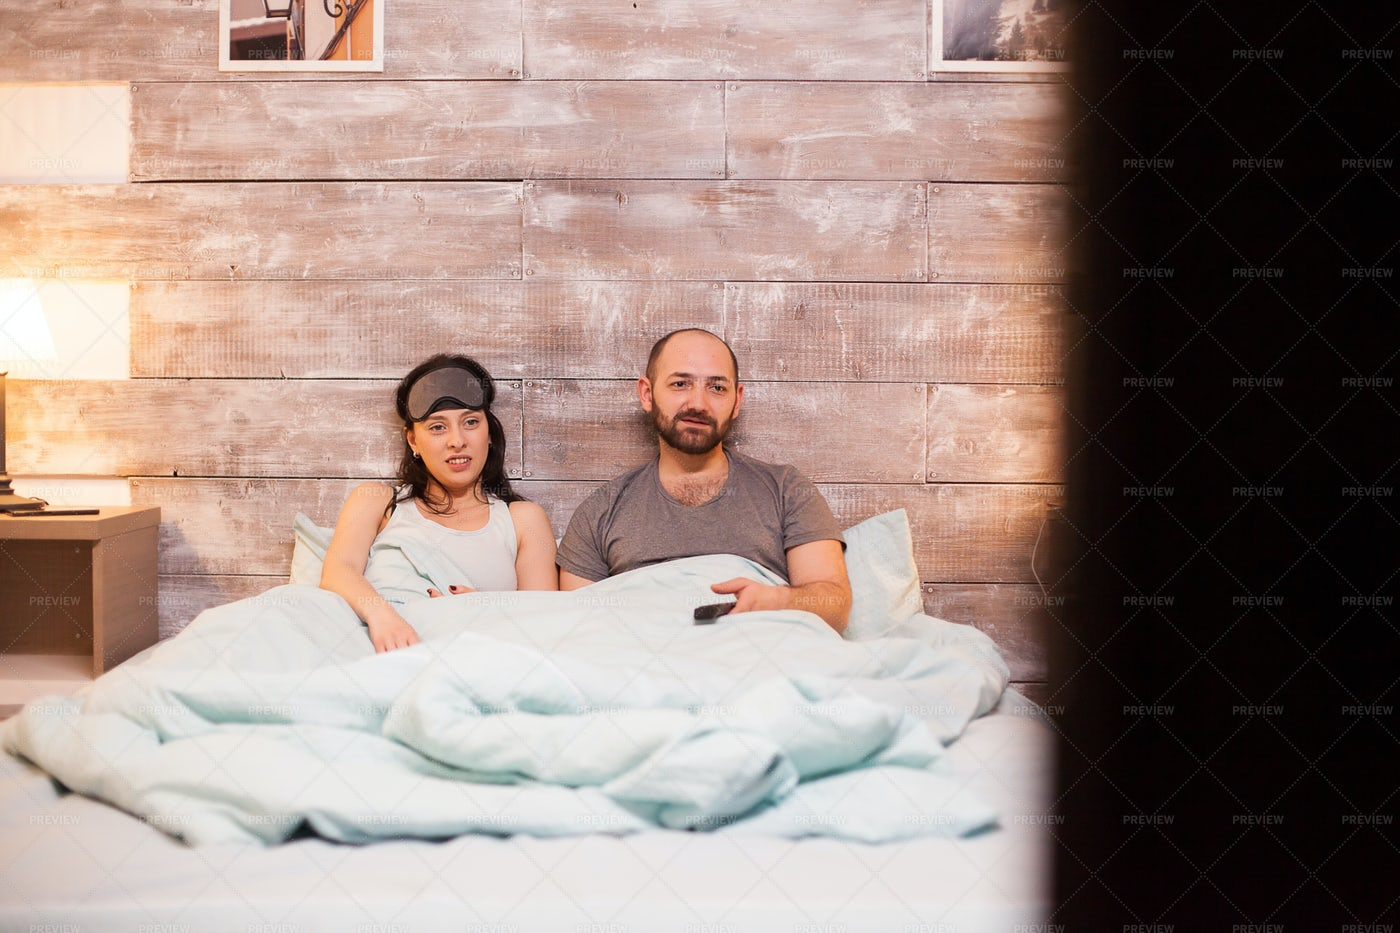 Laying Confortable In Bed: Stock Photos